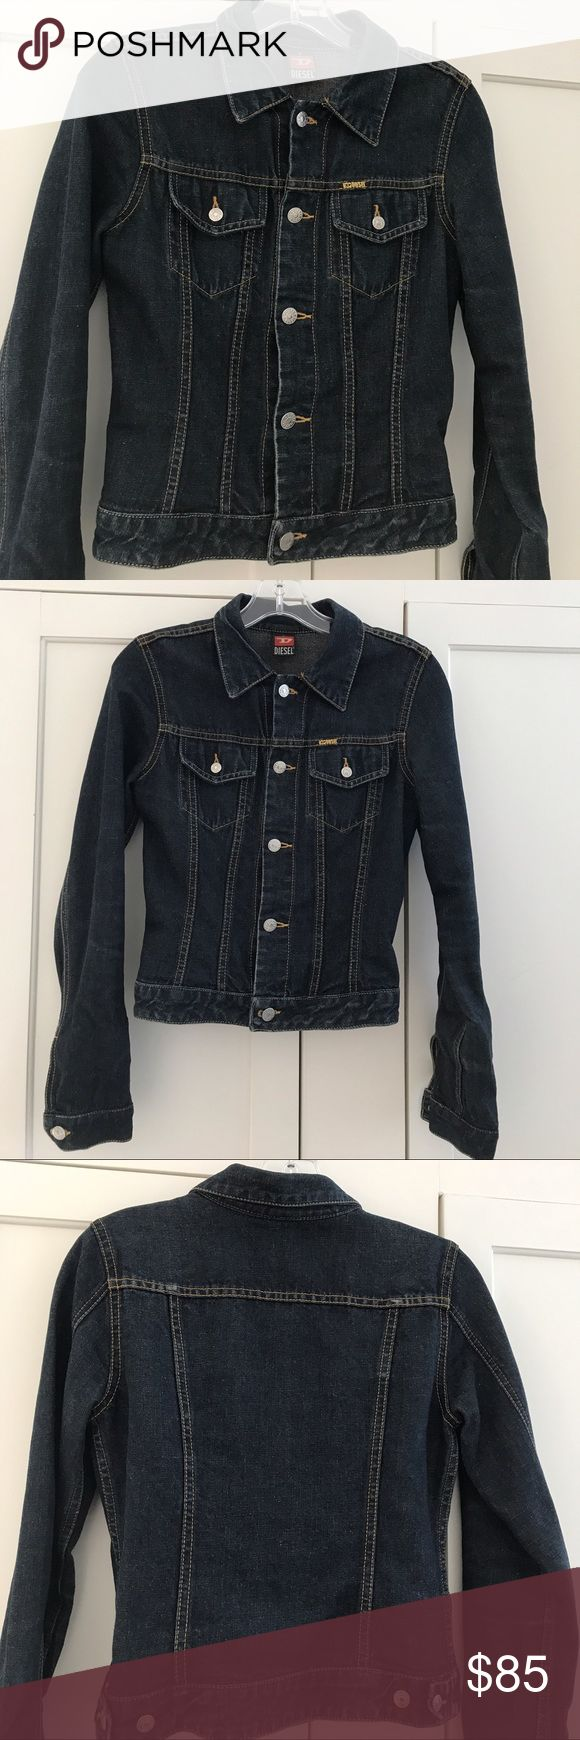 "Diesel women's jeans jacket Diesel women's jean jacket....like new condition....length 19"", armpit to armpit 16"" diesel Jackets & Coats Jean Jackets"